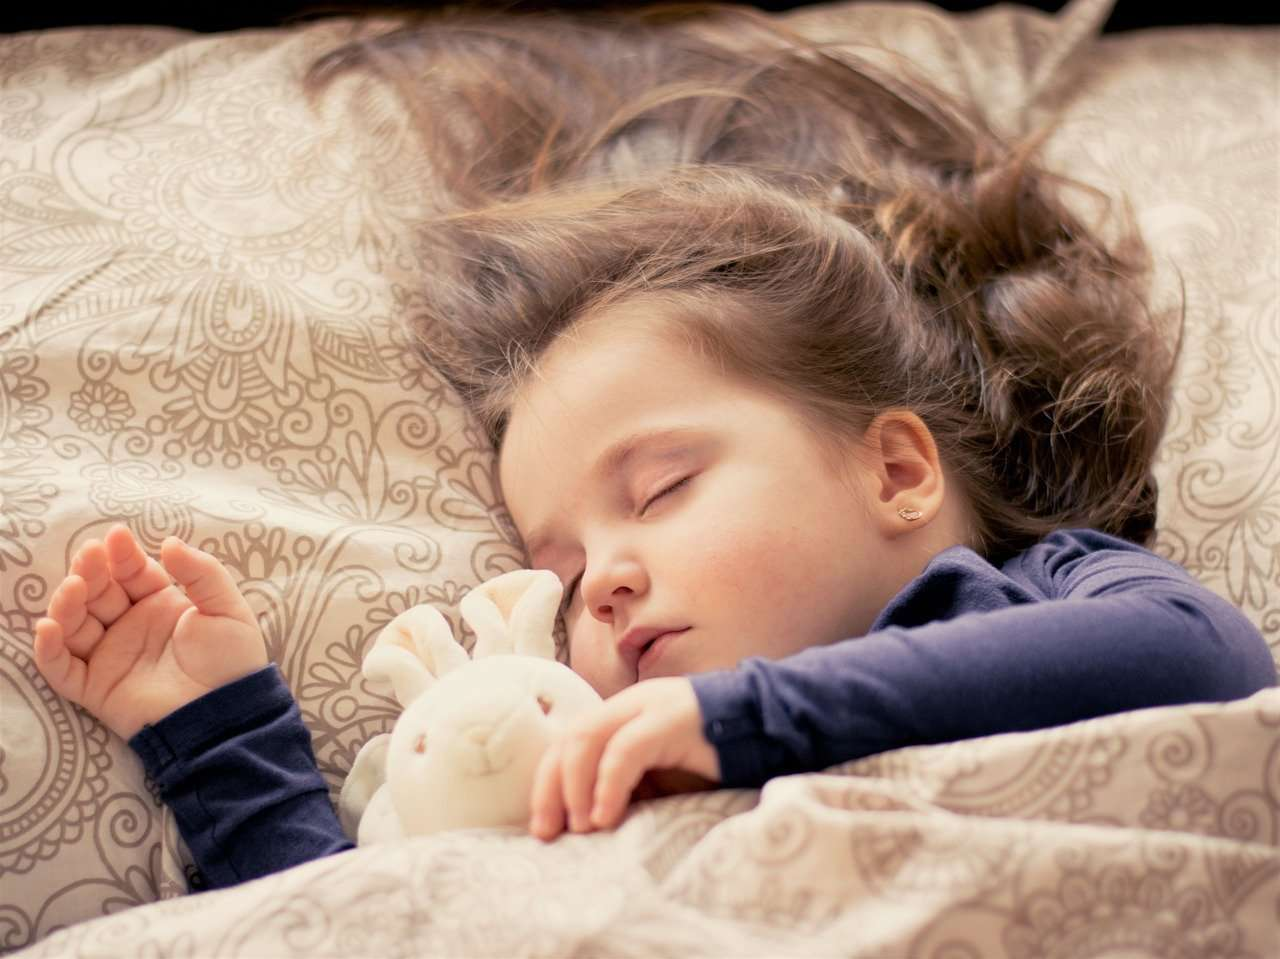 Learn these four practices from Saints to sleep better at night